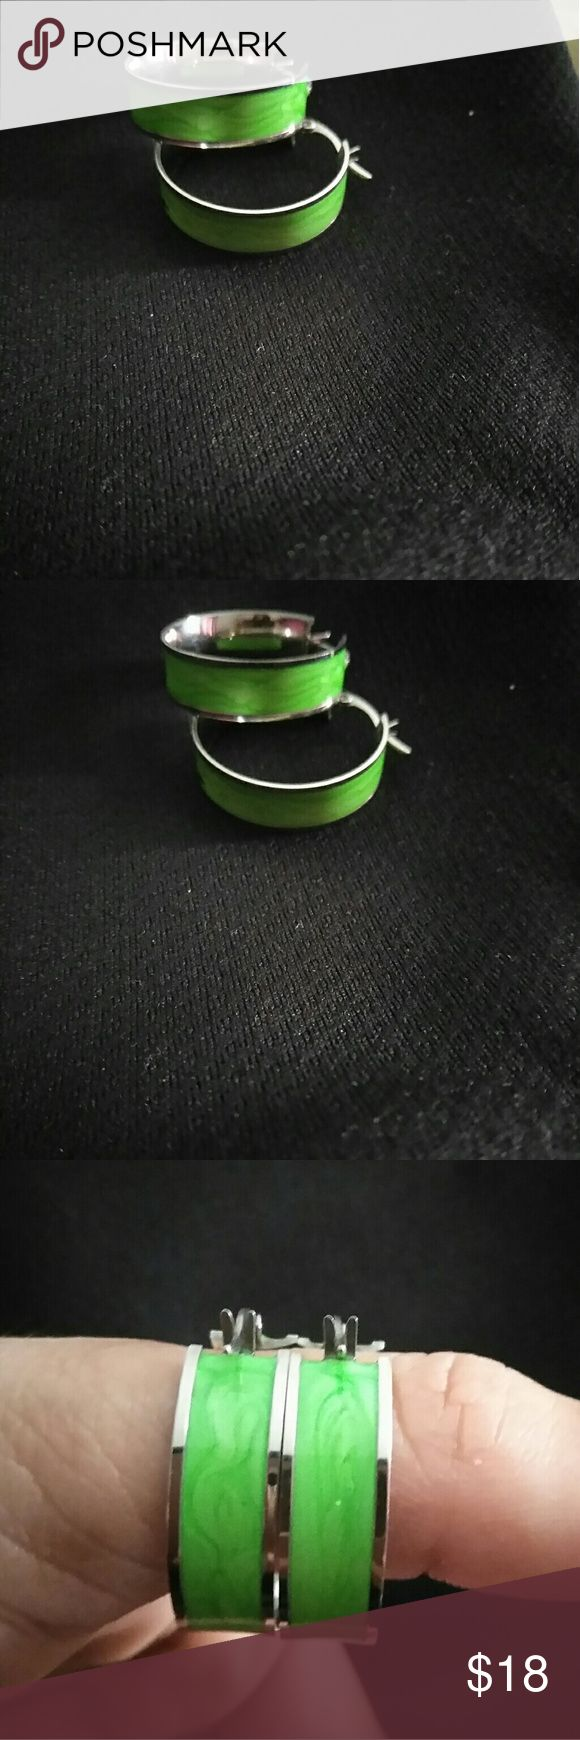 Green color stainless steel earrings Green color stainless steel earrings stainless steel Jewelry Earrings